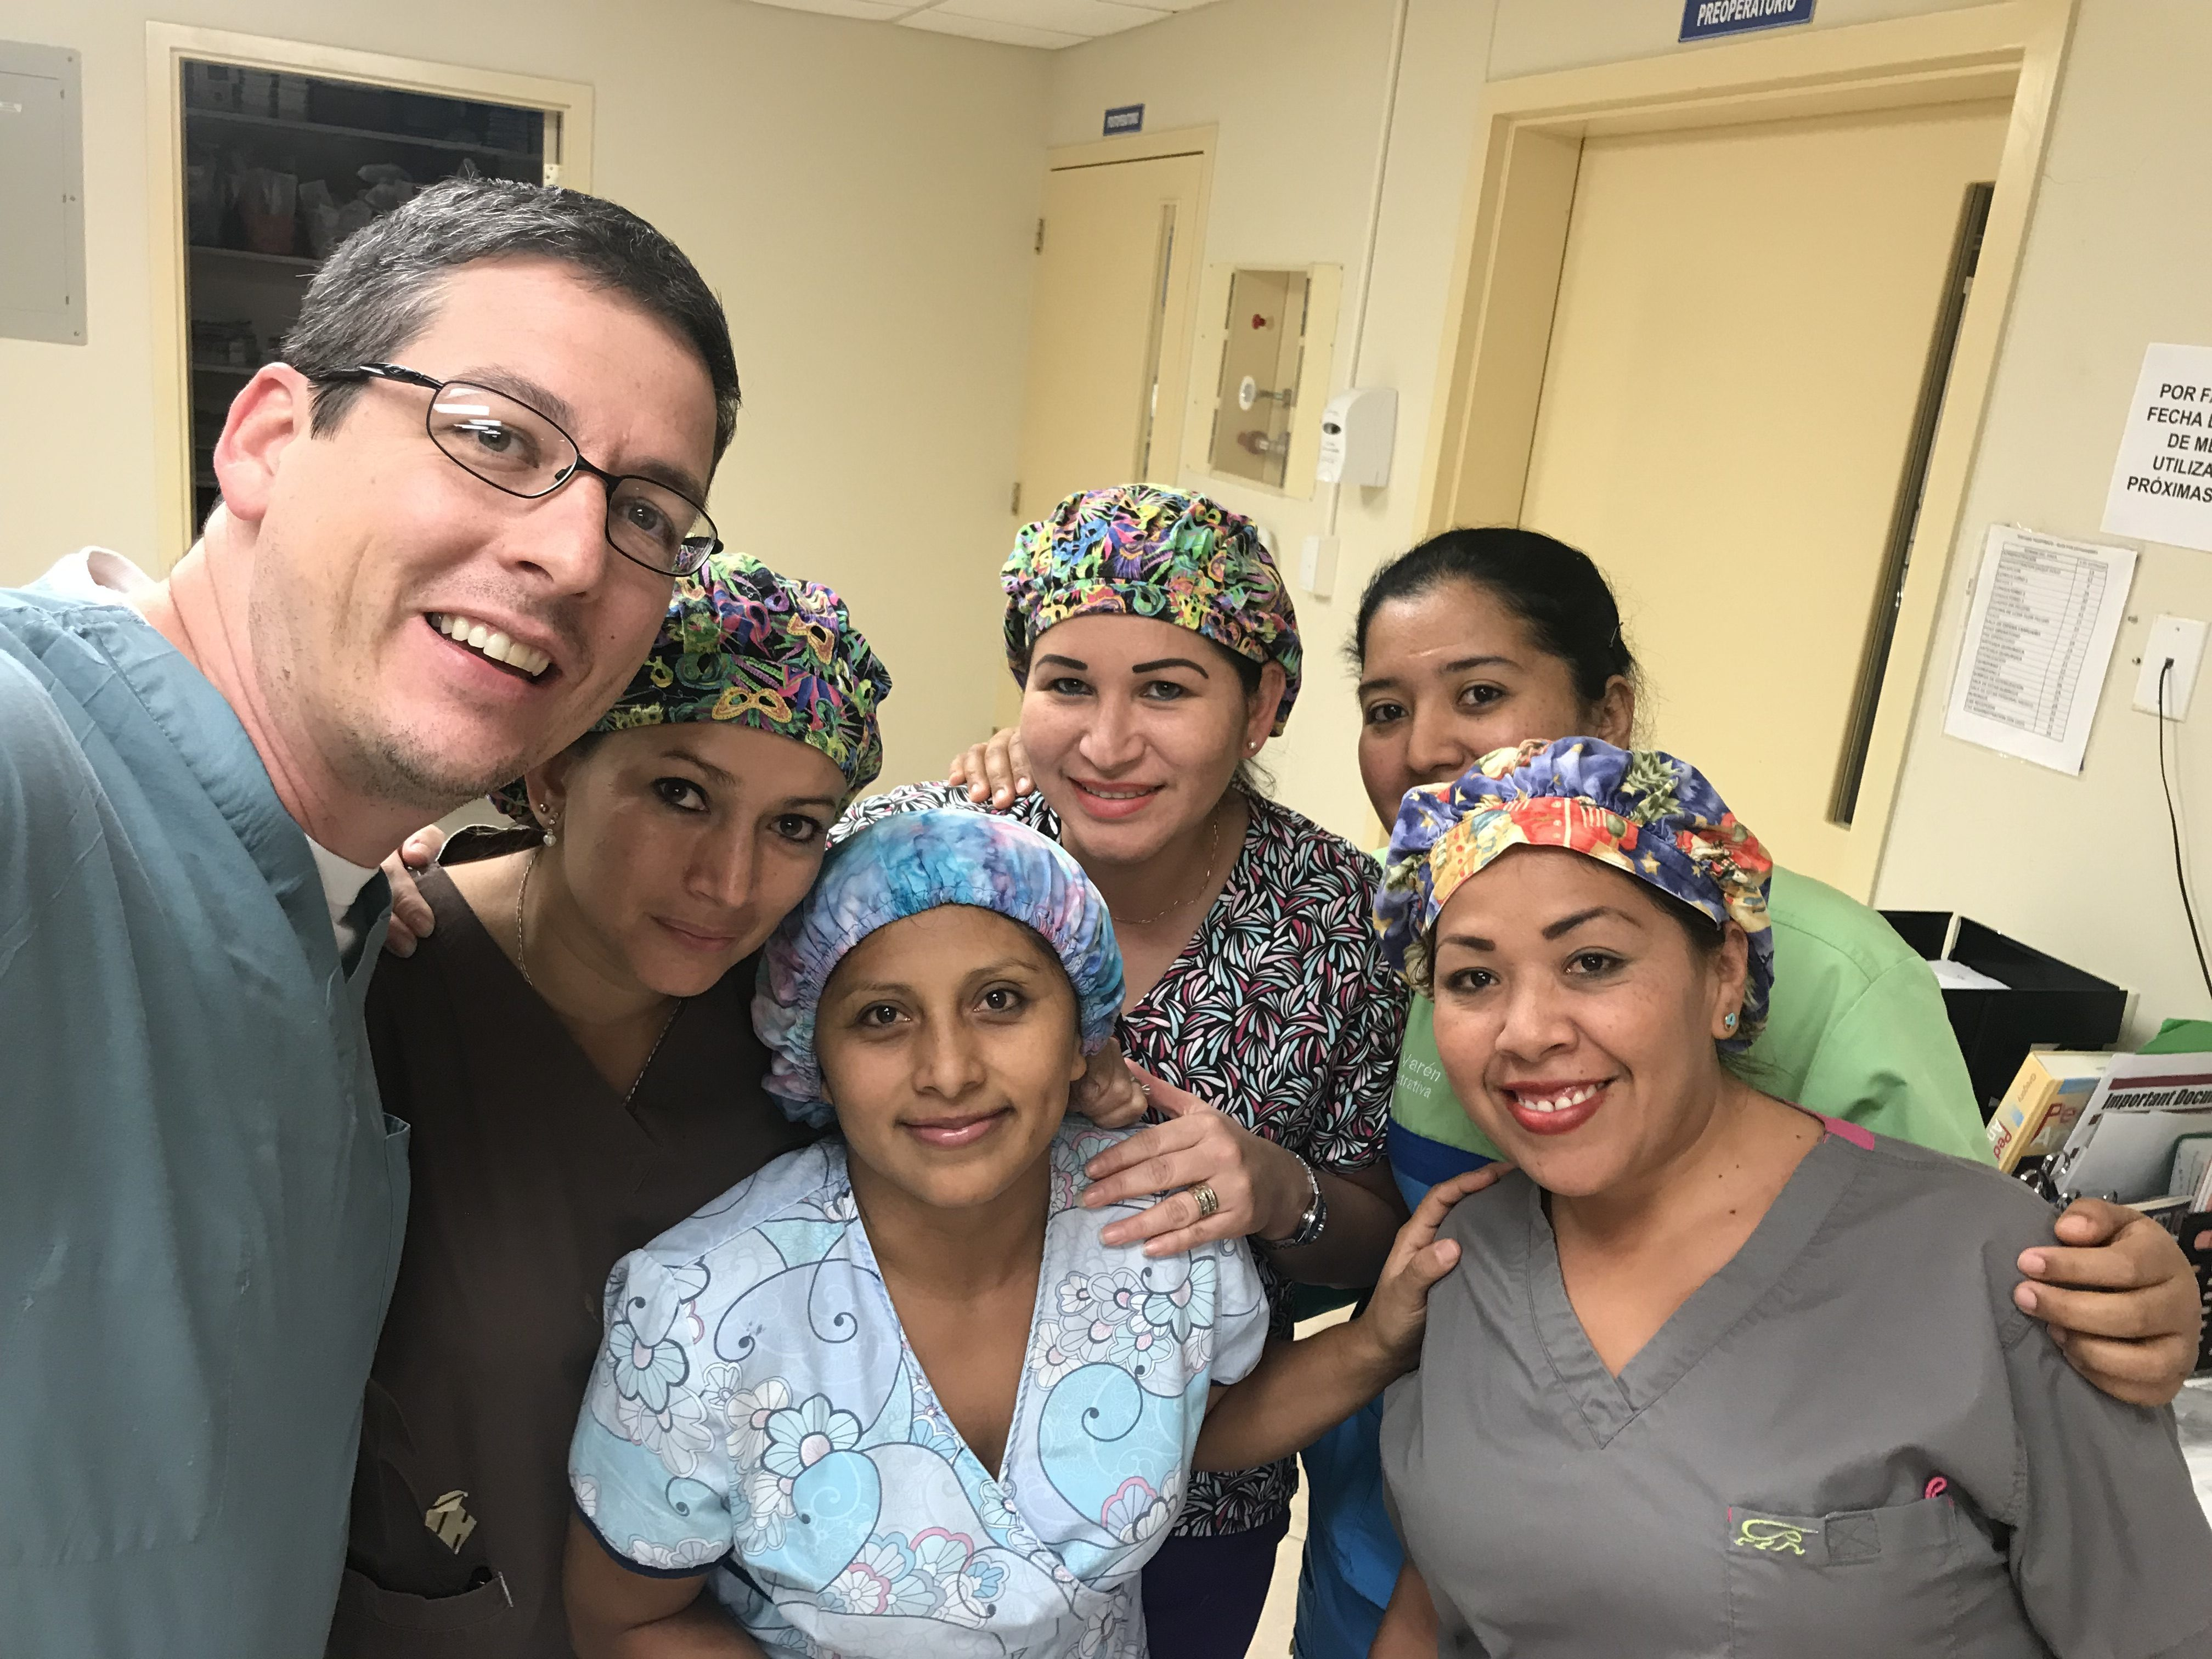 Sean Kiley, MD, and the staff at the clinic